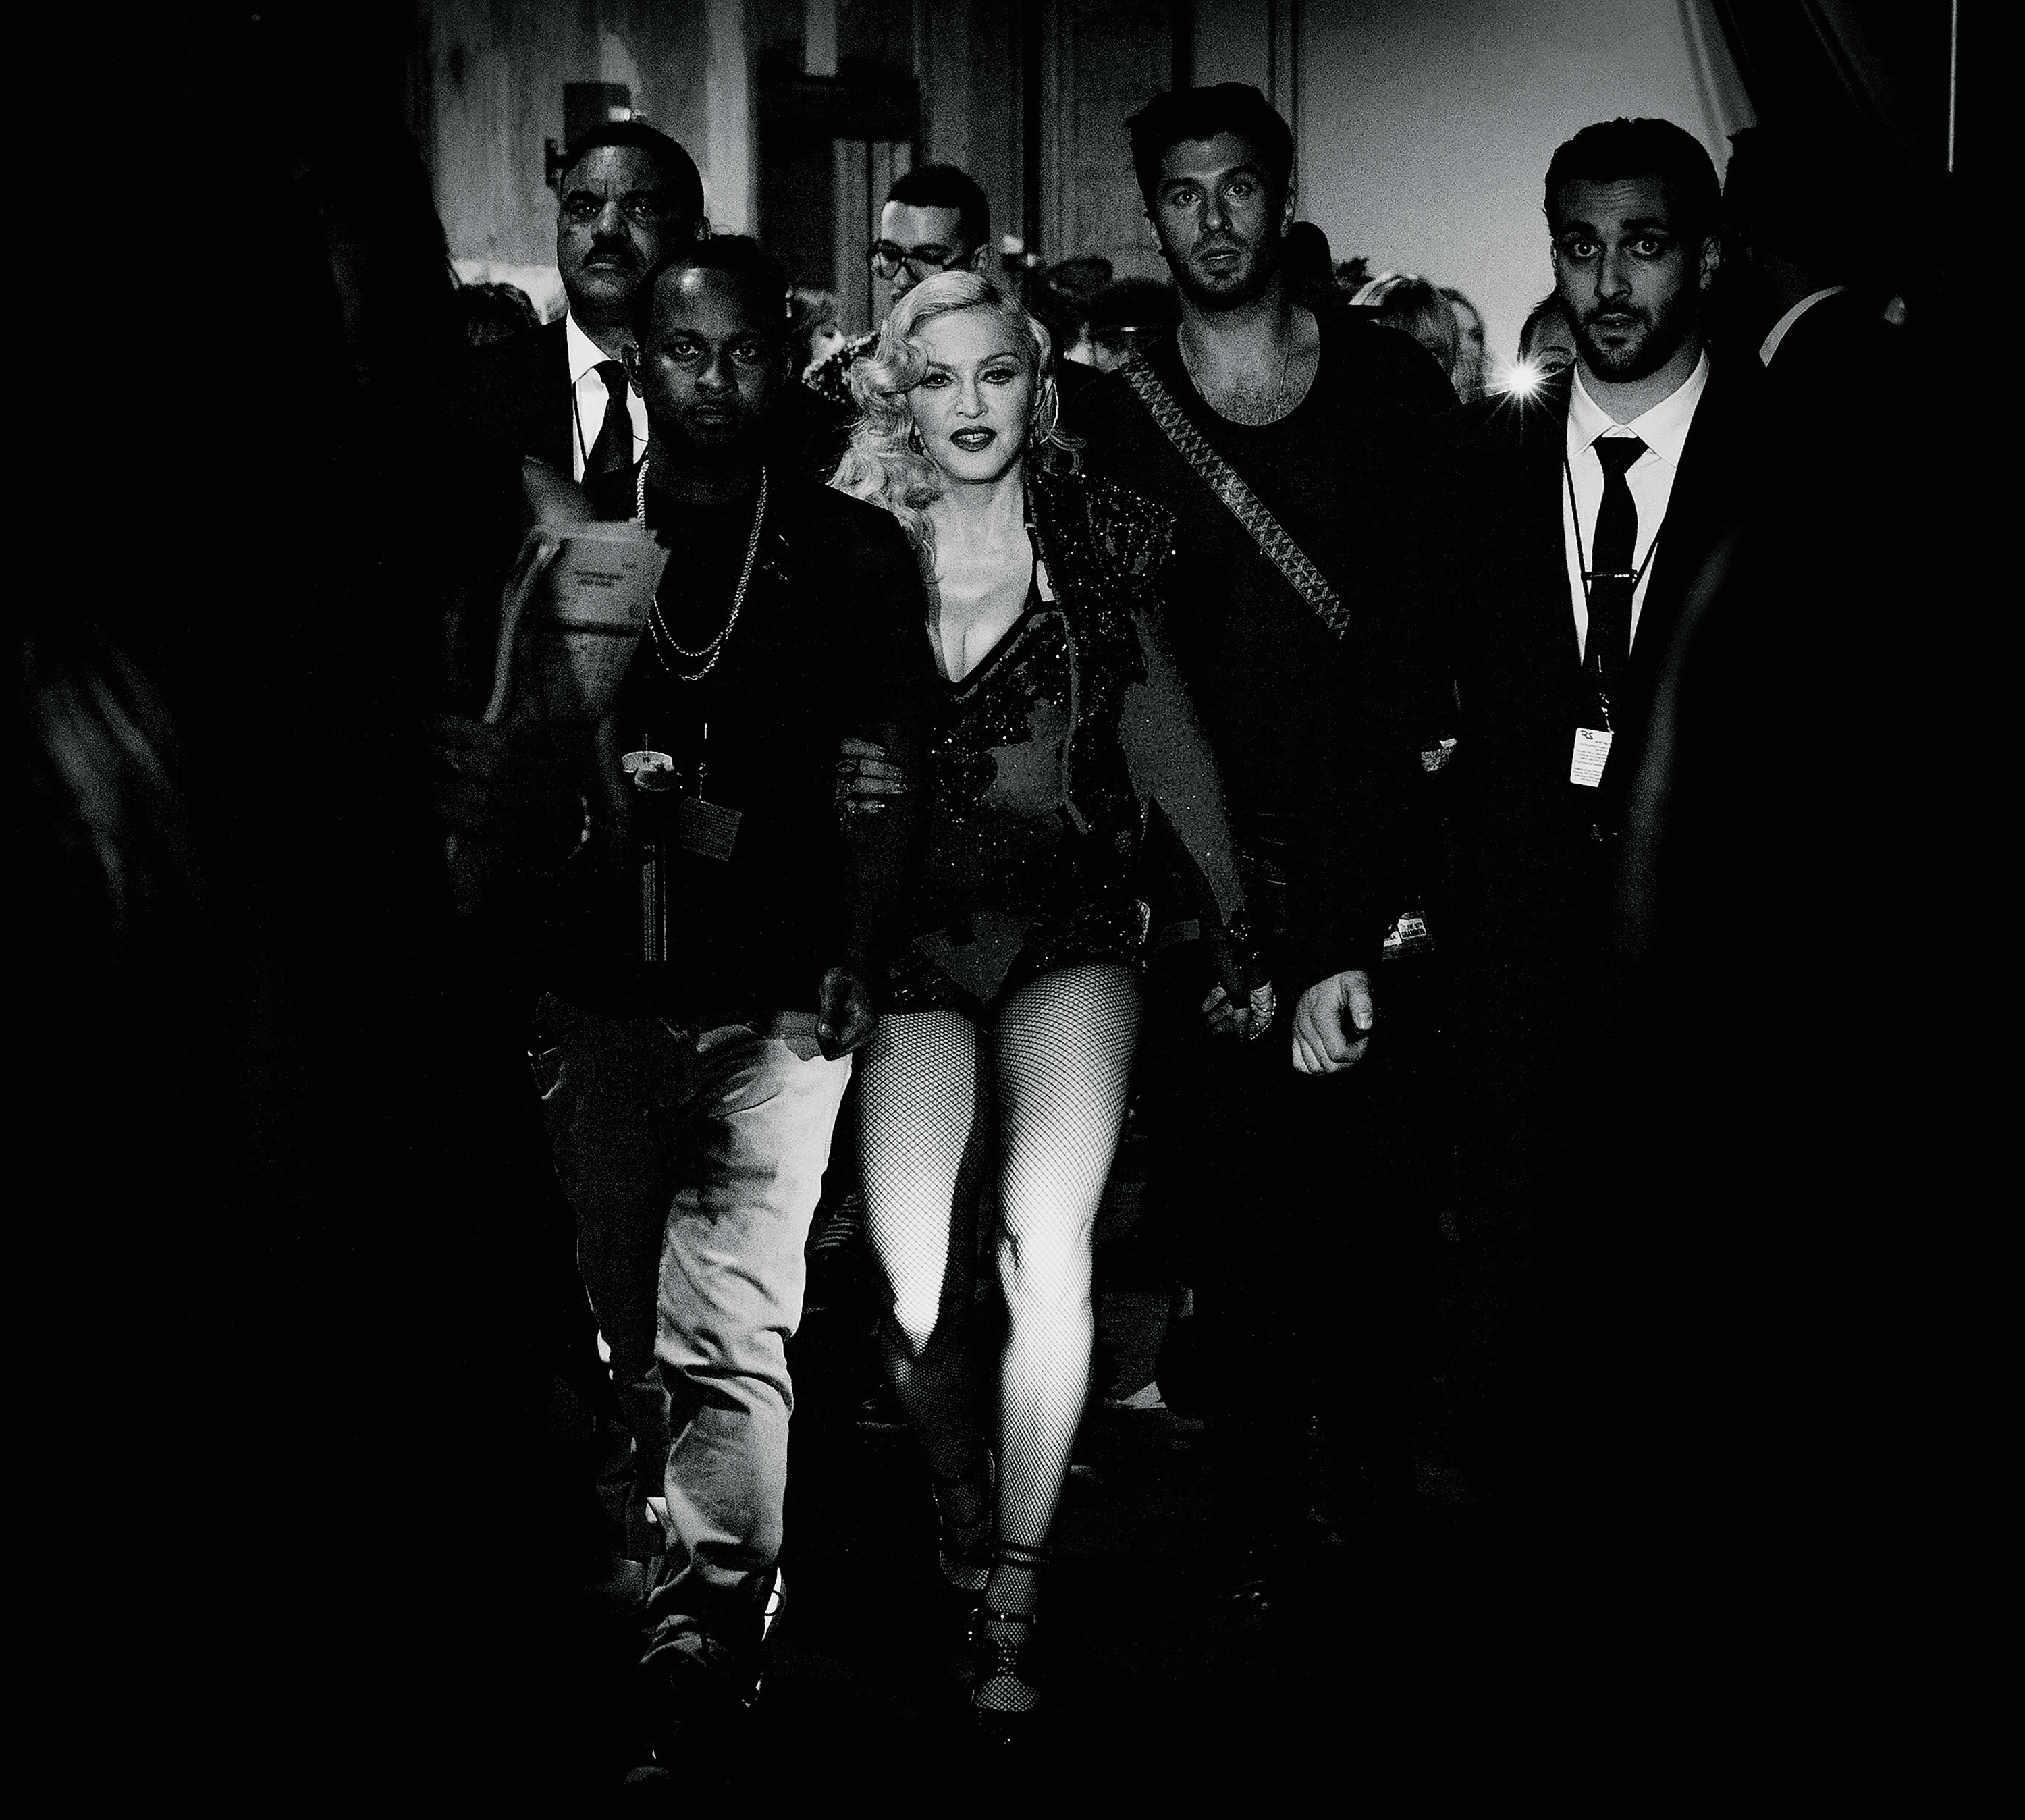 Hitting her stride: Madonna backstage at the 57th annual Grammy Awards on Feb. 8